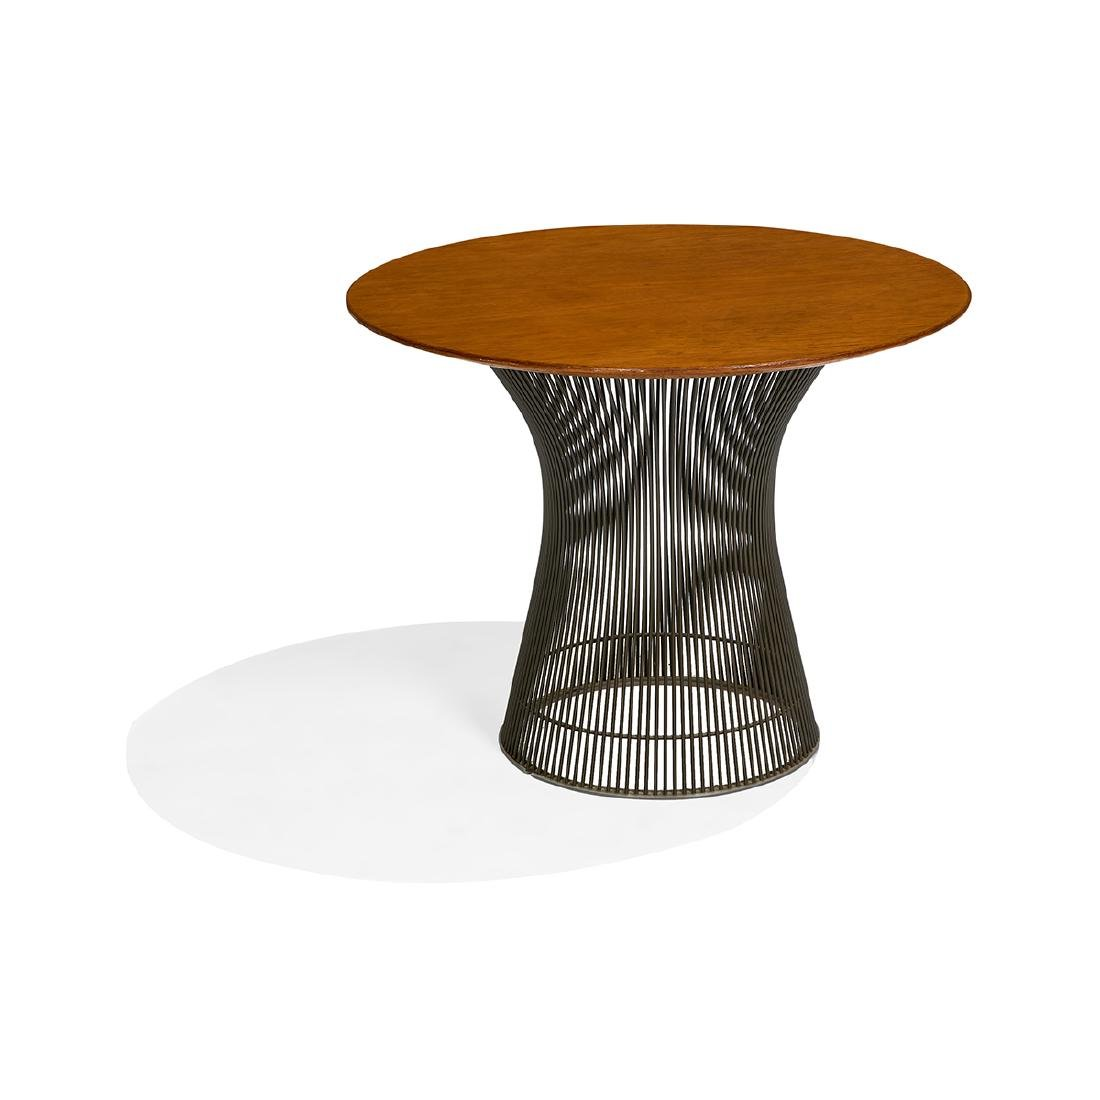 Warren Platner for Knoll International side table